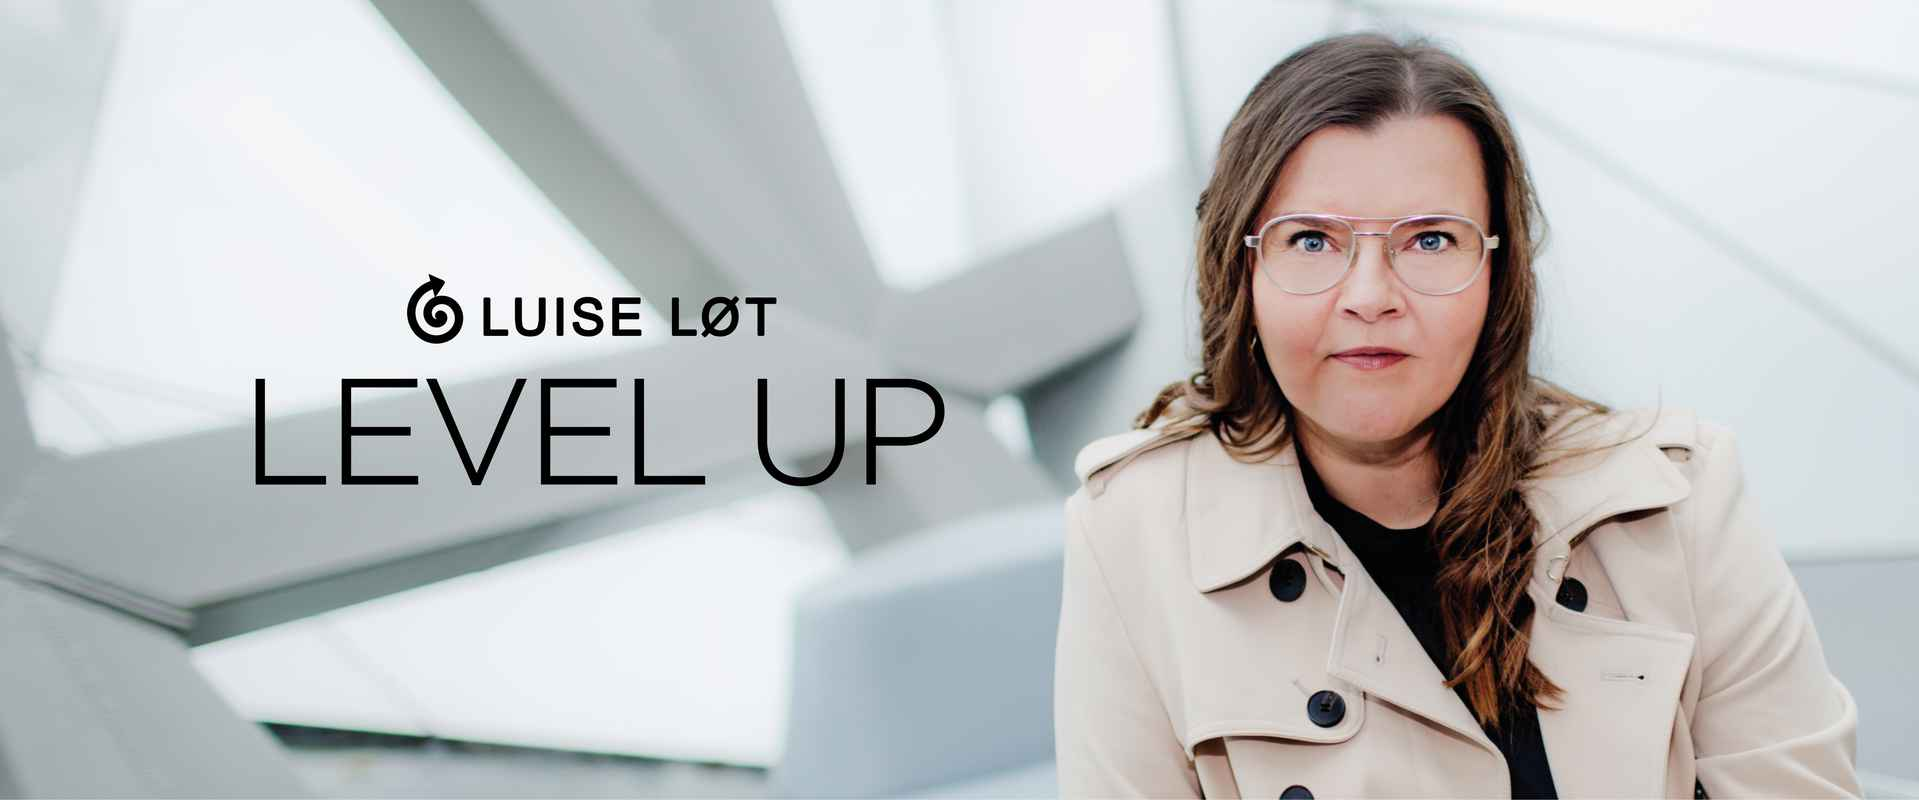 Level up - luise loet